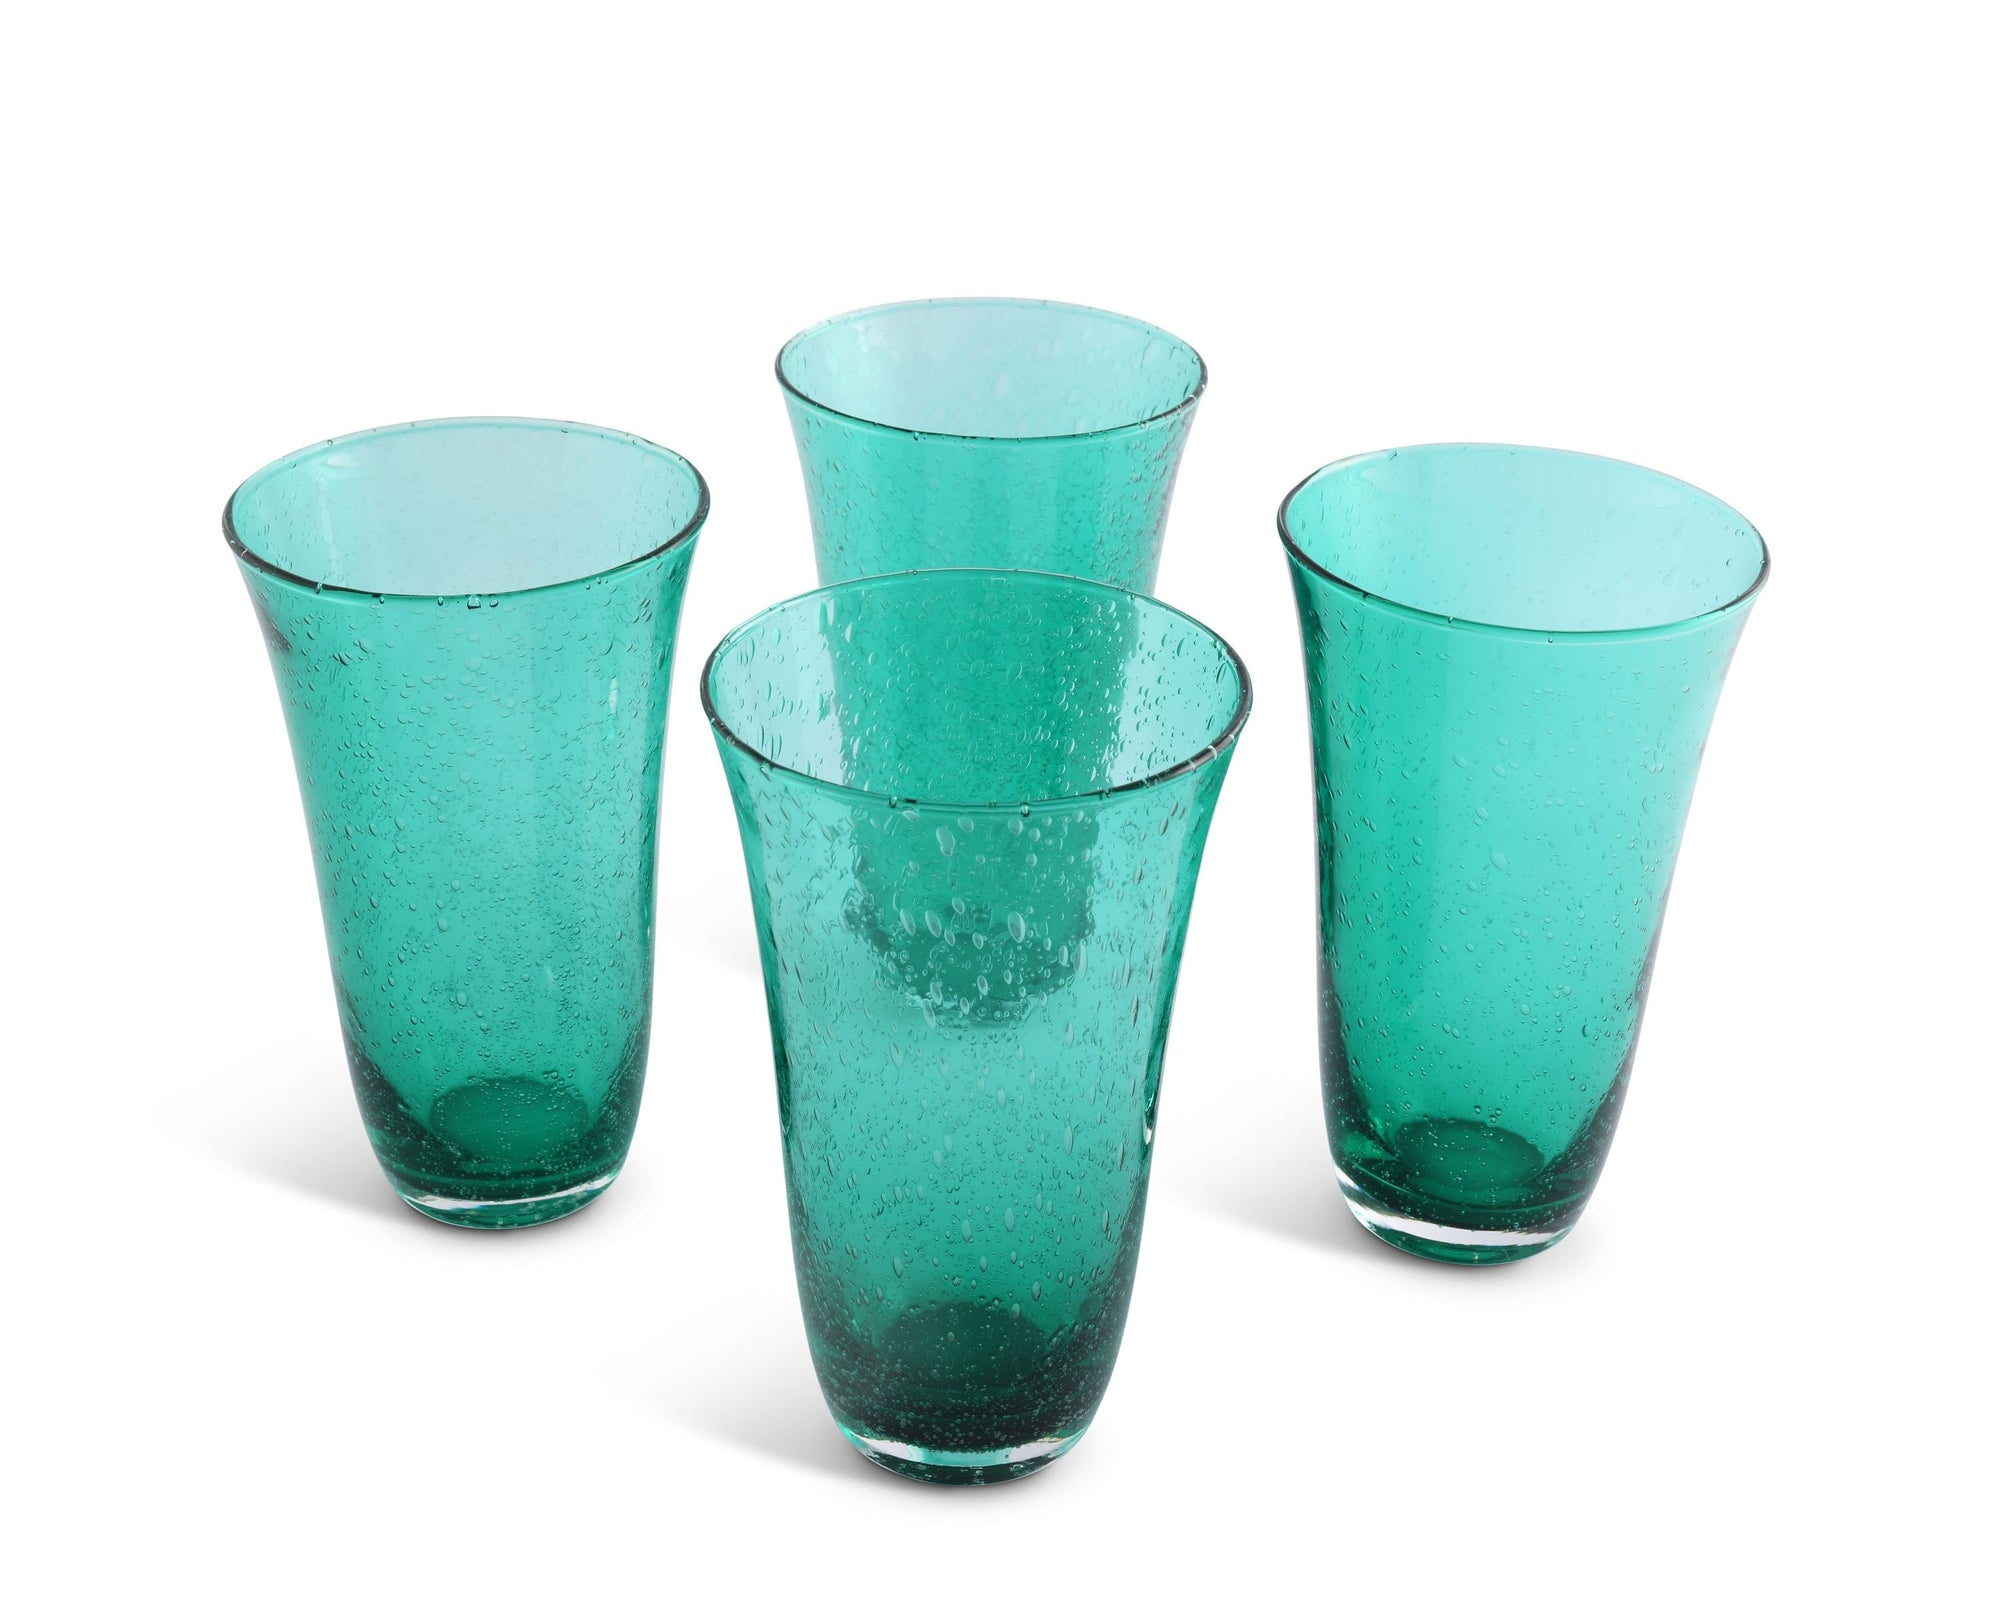 Vagabond House Hand Blown Glassware Illusion Hi-Ball - Green- Set of 4